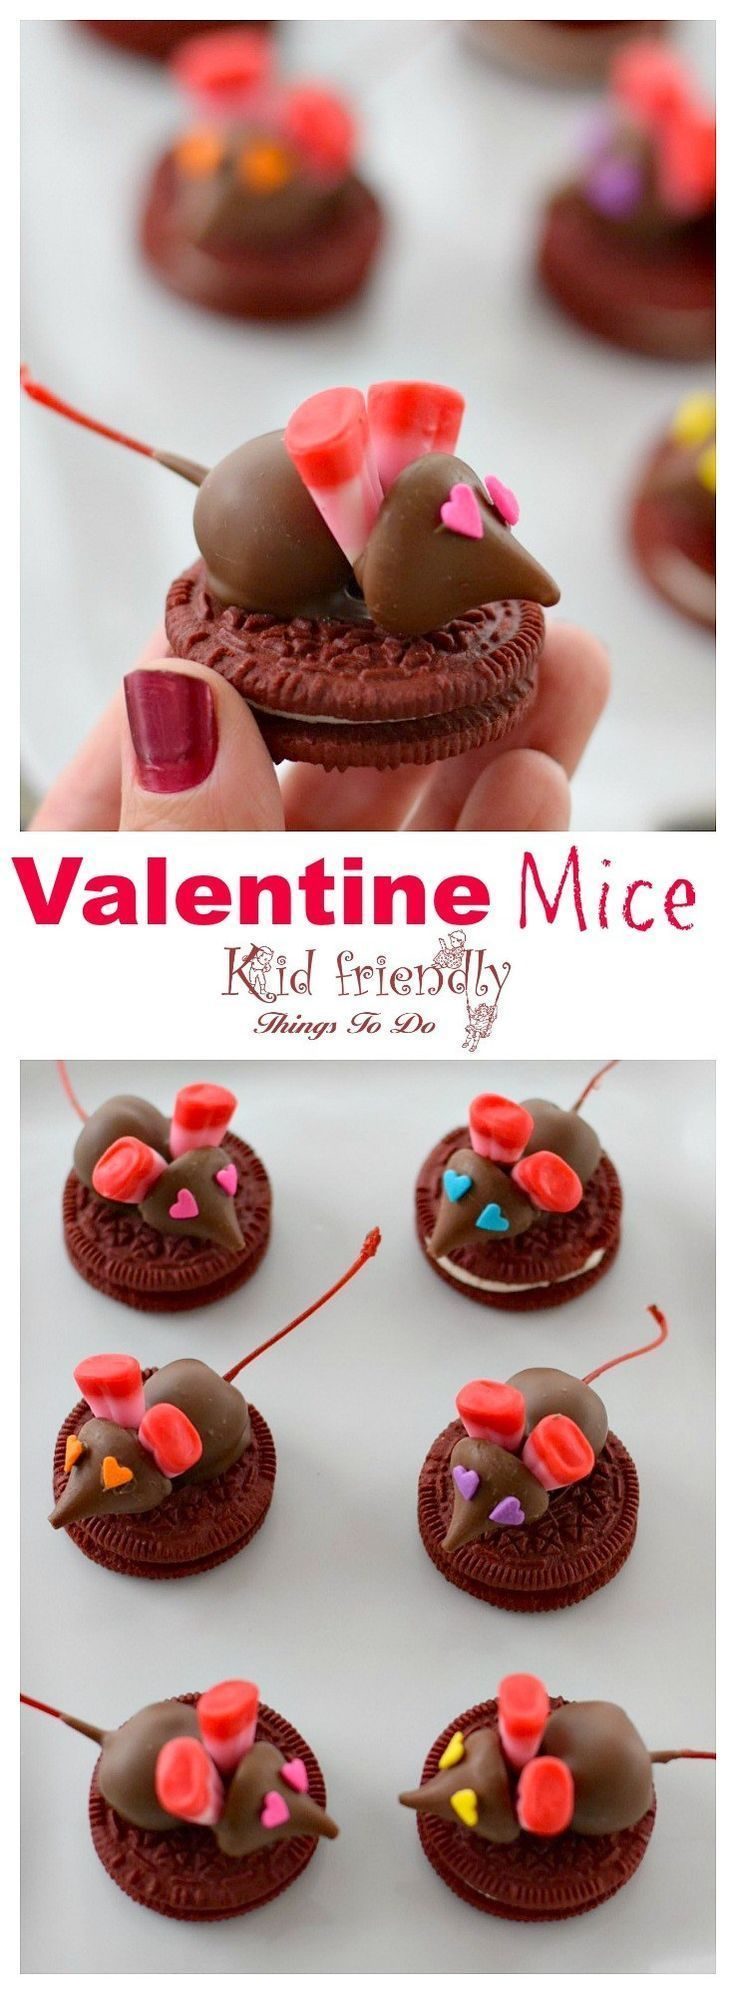 Best 1190 *Kid Friendly - Valentine's Day images on Pinterest ...